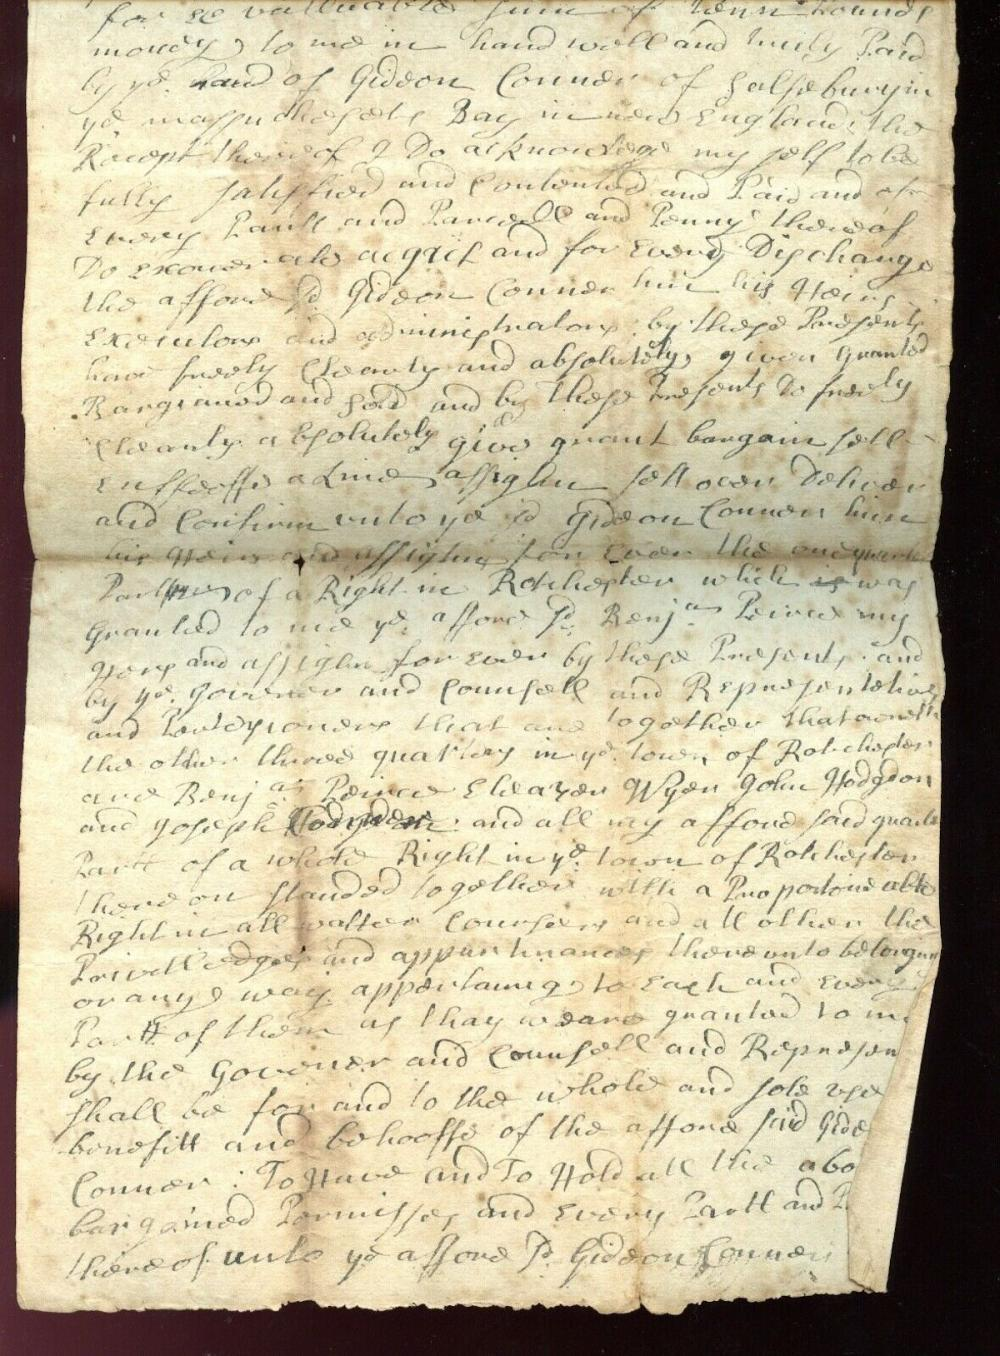 1727 DOVER, NH Land Deed BENJAMIN PIERCE Land in Rochester to GIDEON CONNOR